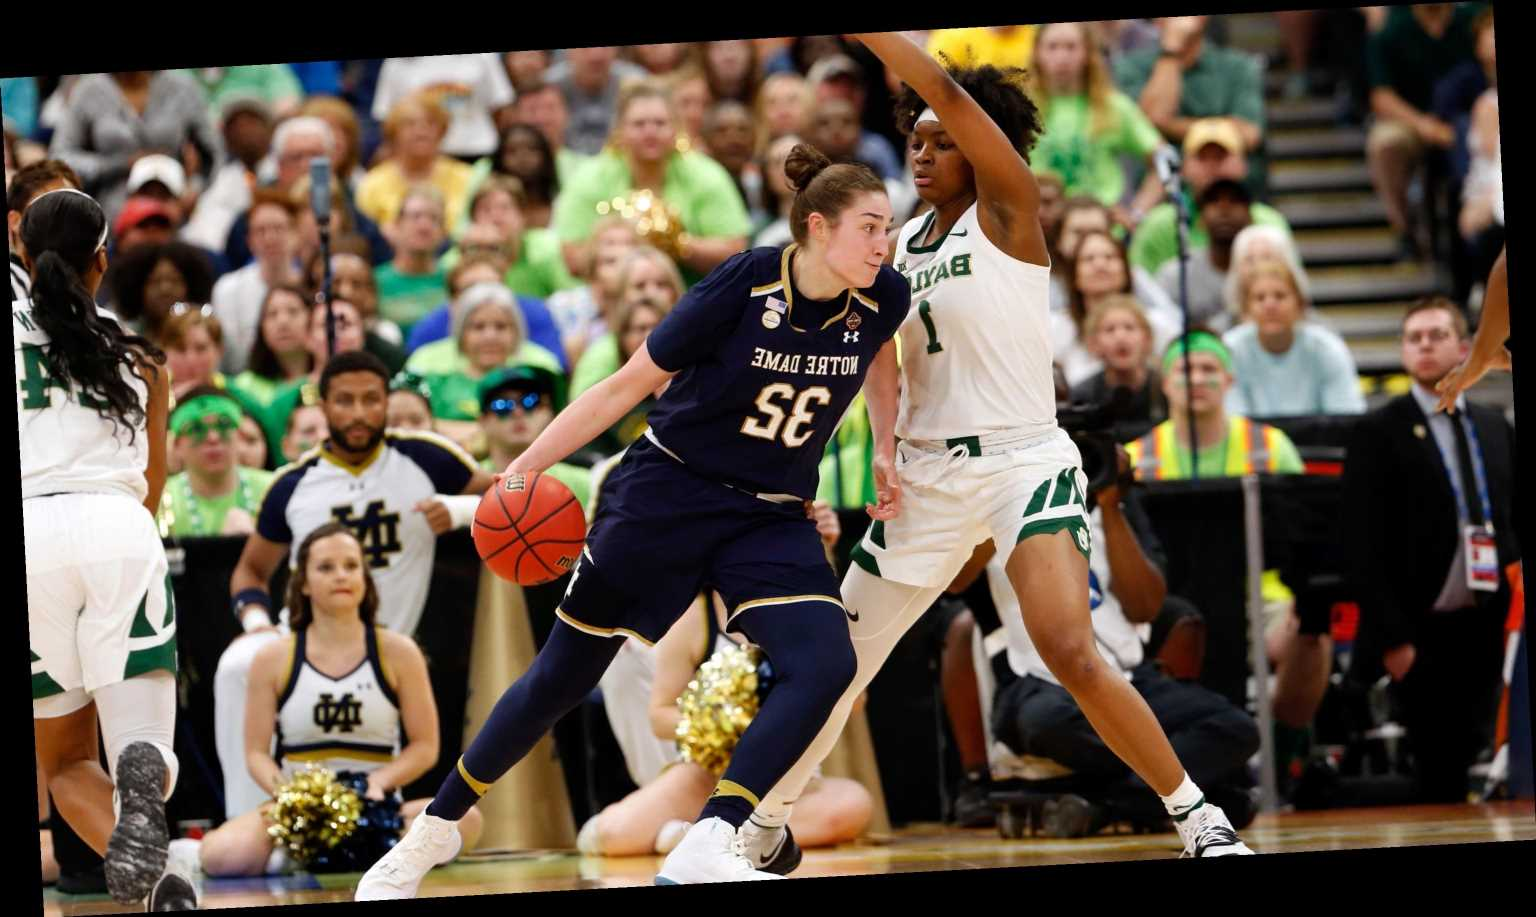 No decision yet on NCAA women's basketball tournament locations